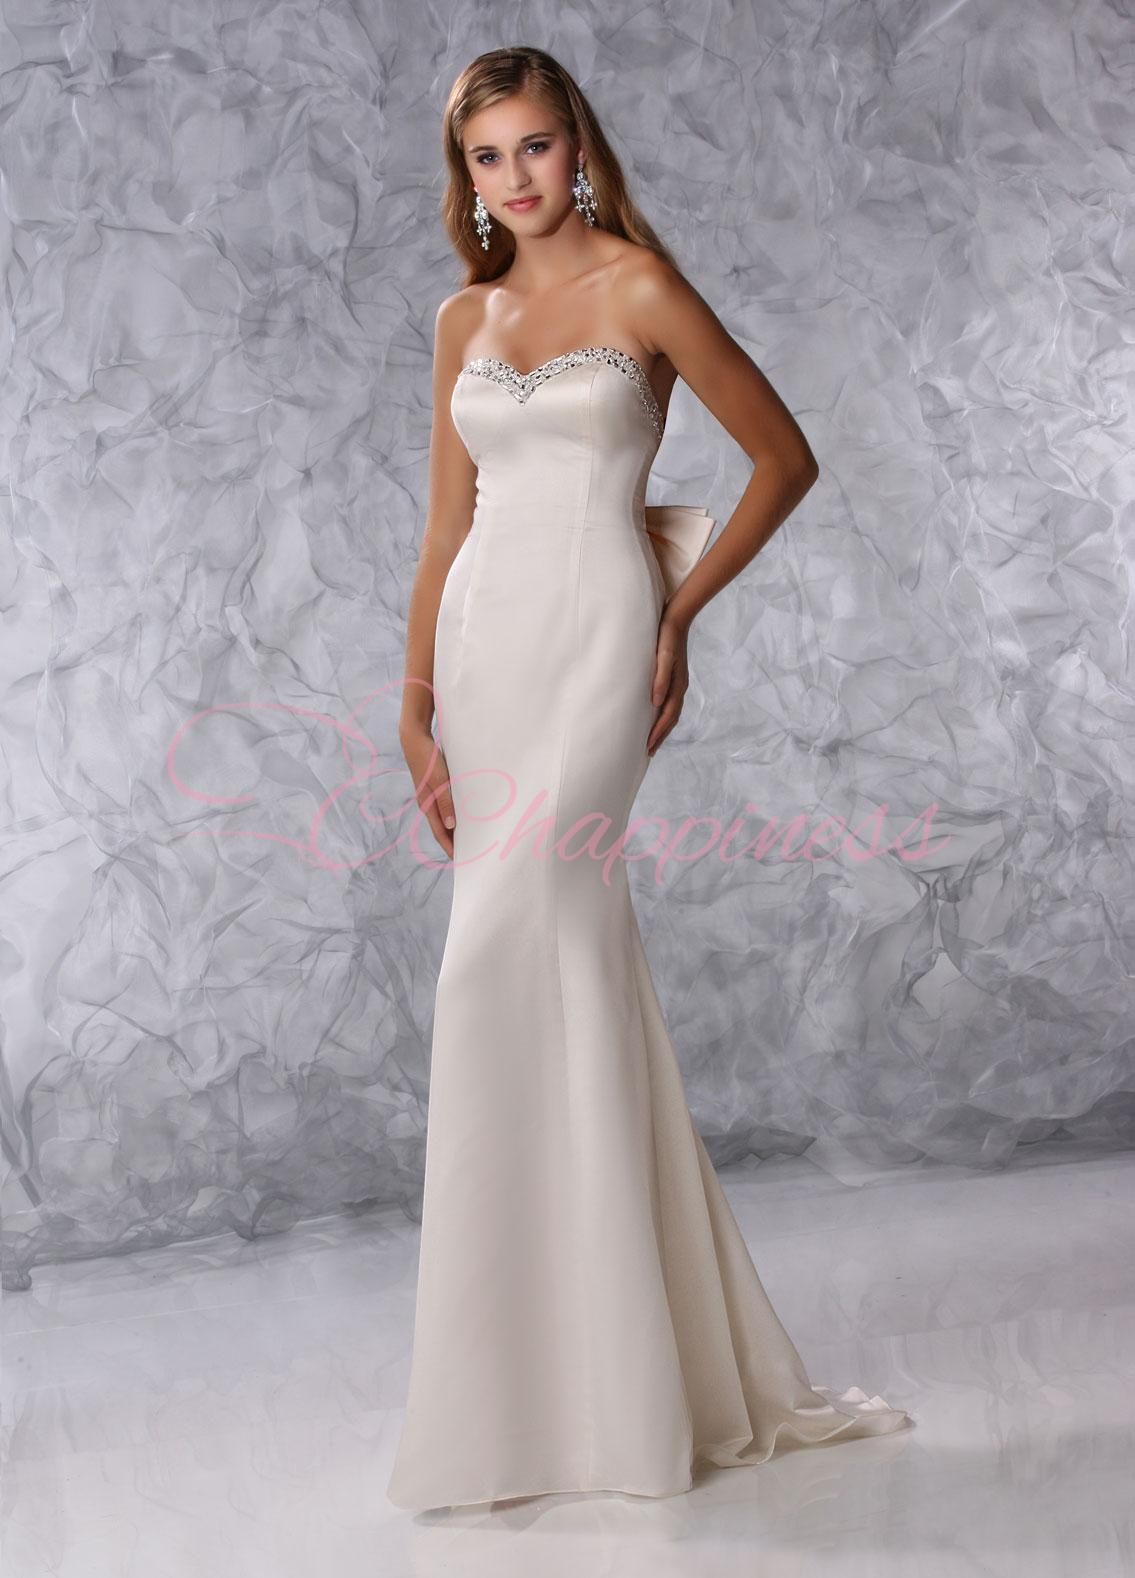 Wedding Dresses: Fabric style Dresses: simple wedding dress